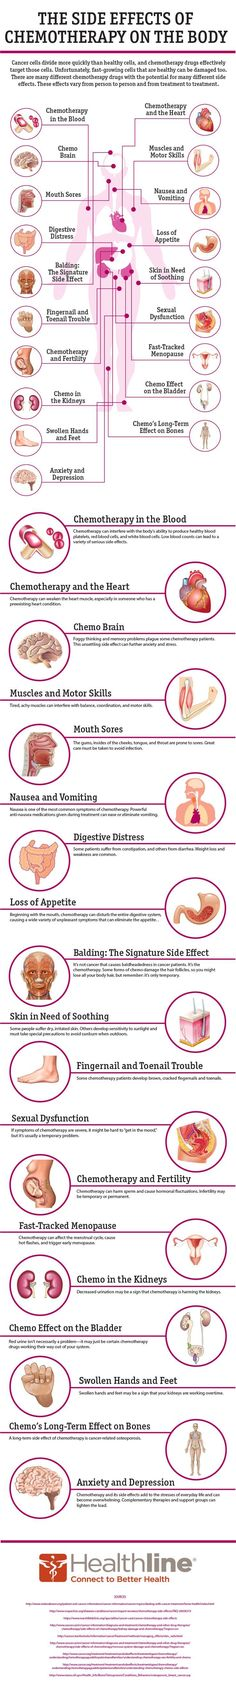 Check out a virtual guide of 19 effects of chemotherapy on the body: http://www.healthline.com/health/cancer/effects-on-body